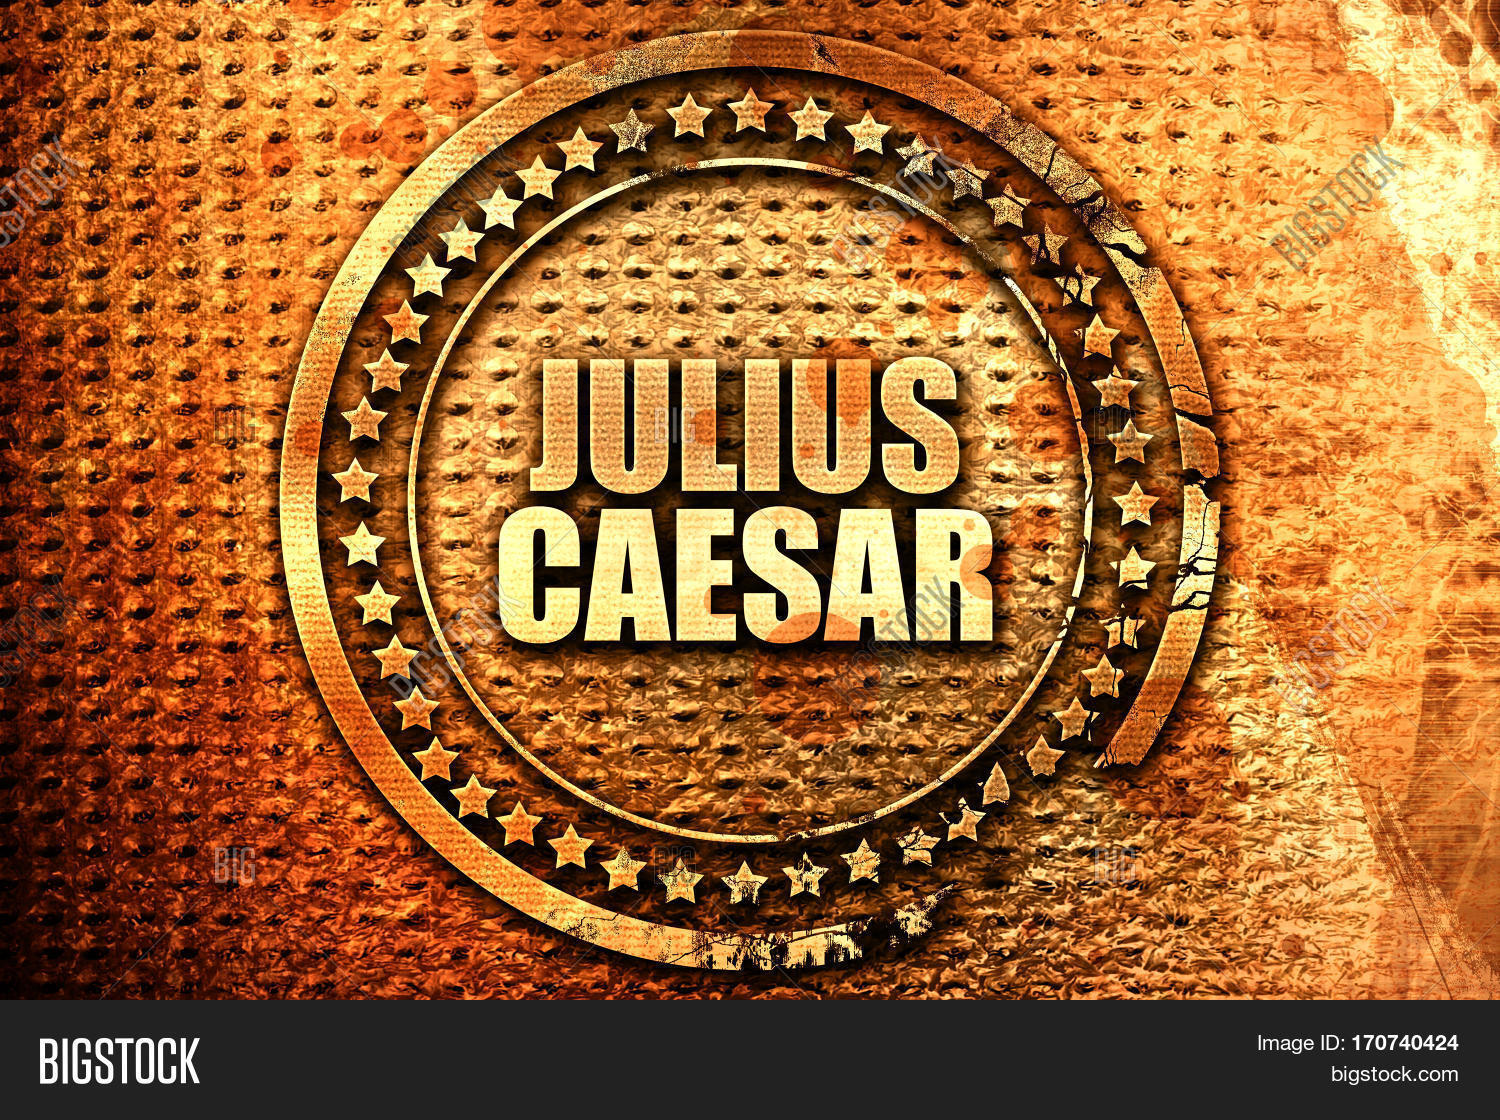 Julius Caesar 3d Image Photo Free Trial Bigstock